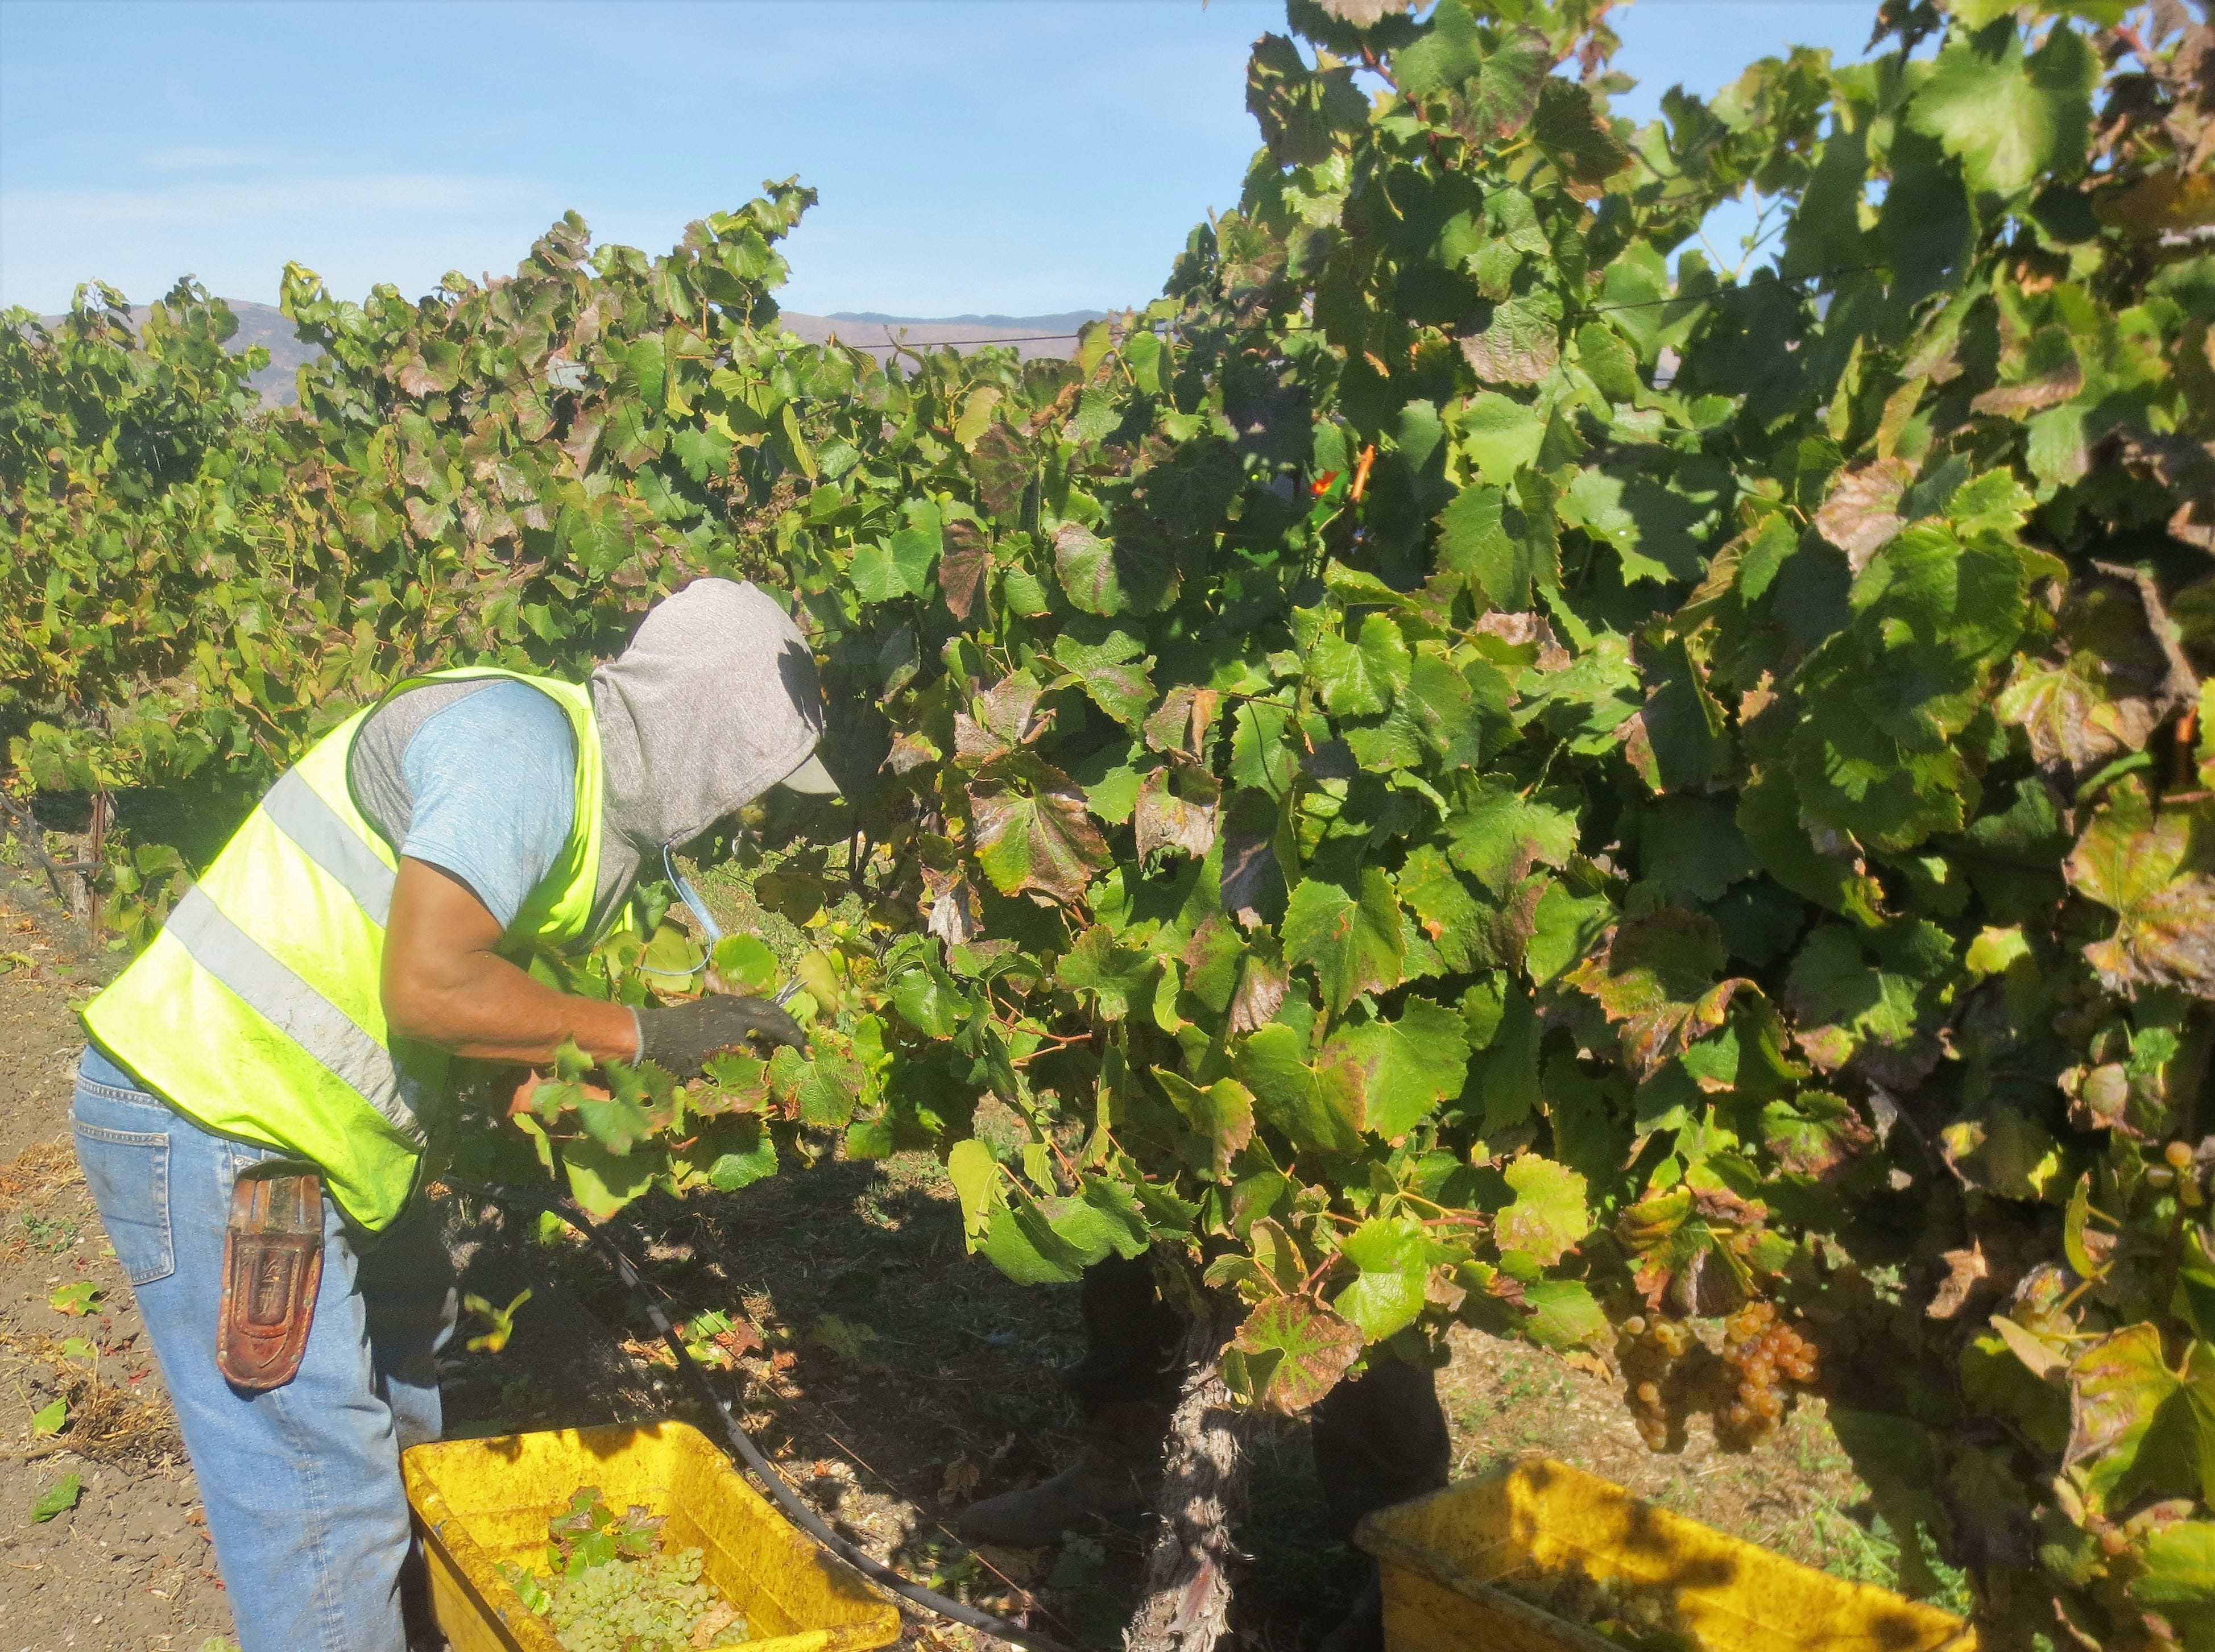 Harvesting grapes at a vineyard in the Edna Valley of San Luis Obispo County, California. The valley has more than 250 wineries.